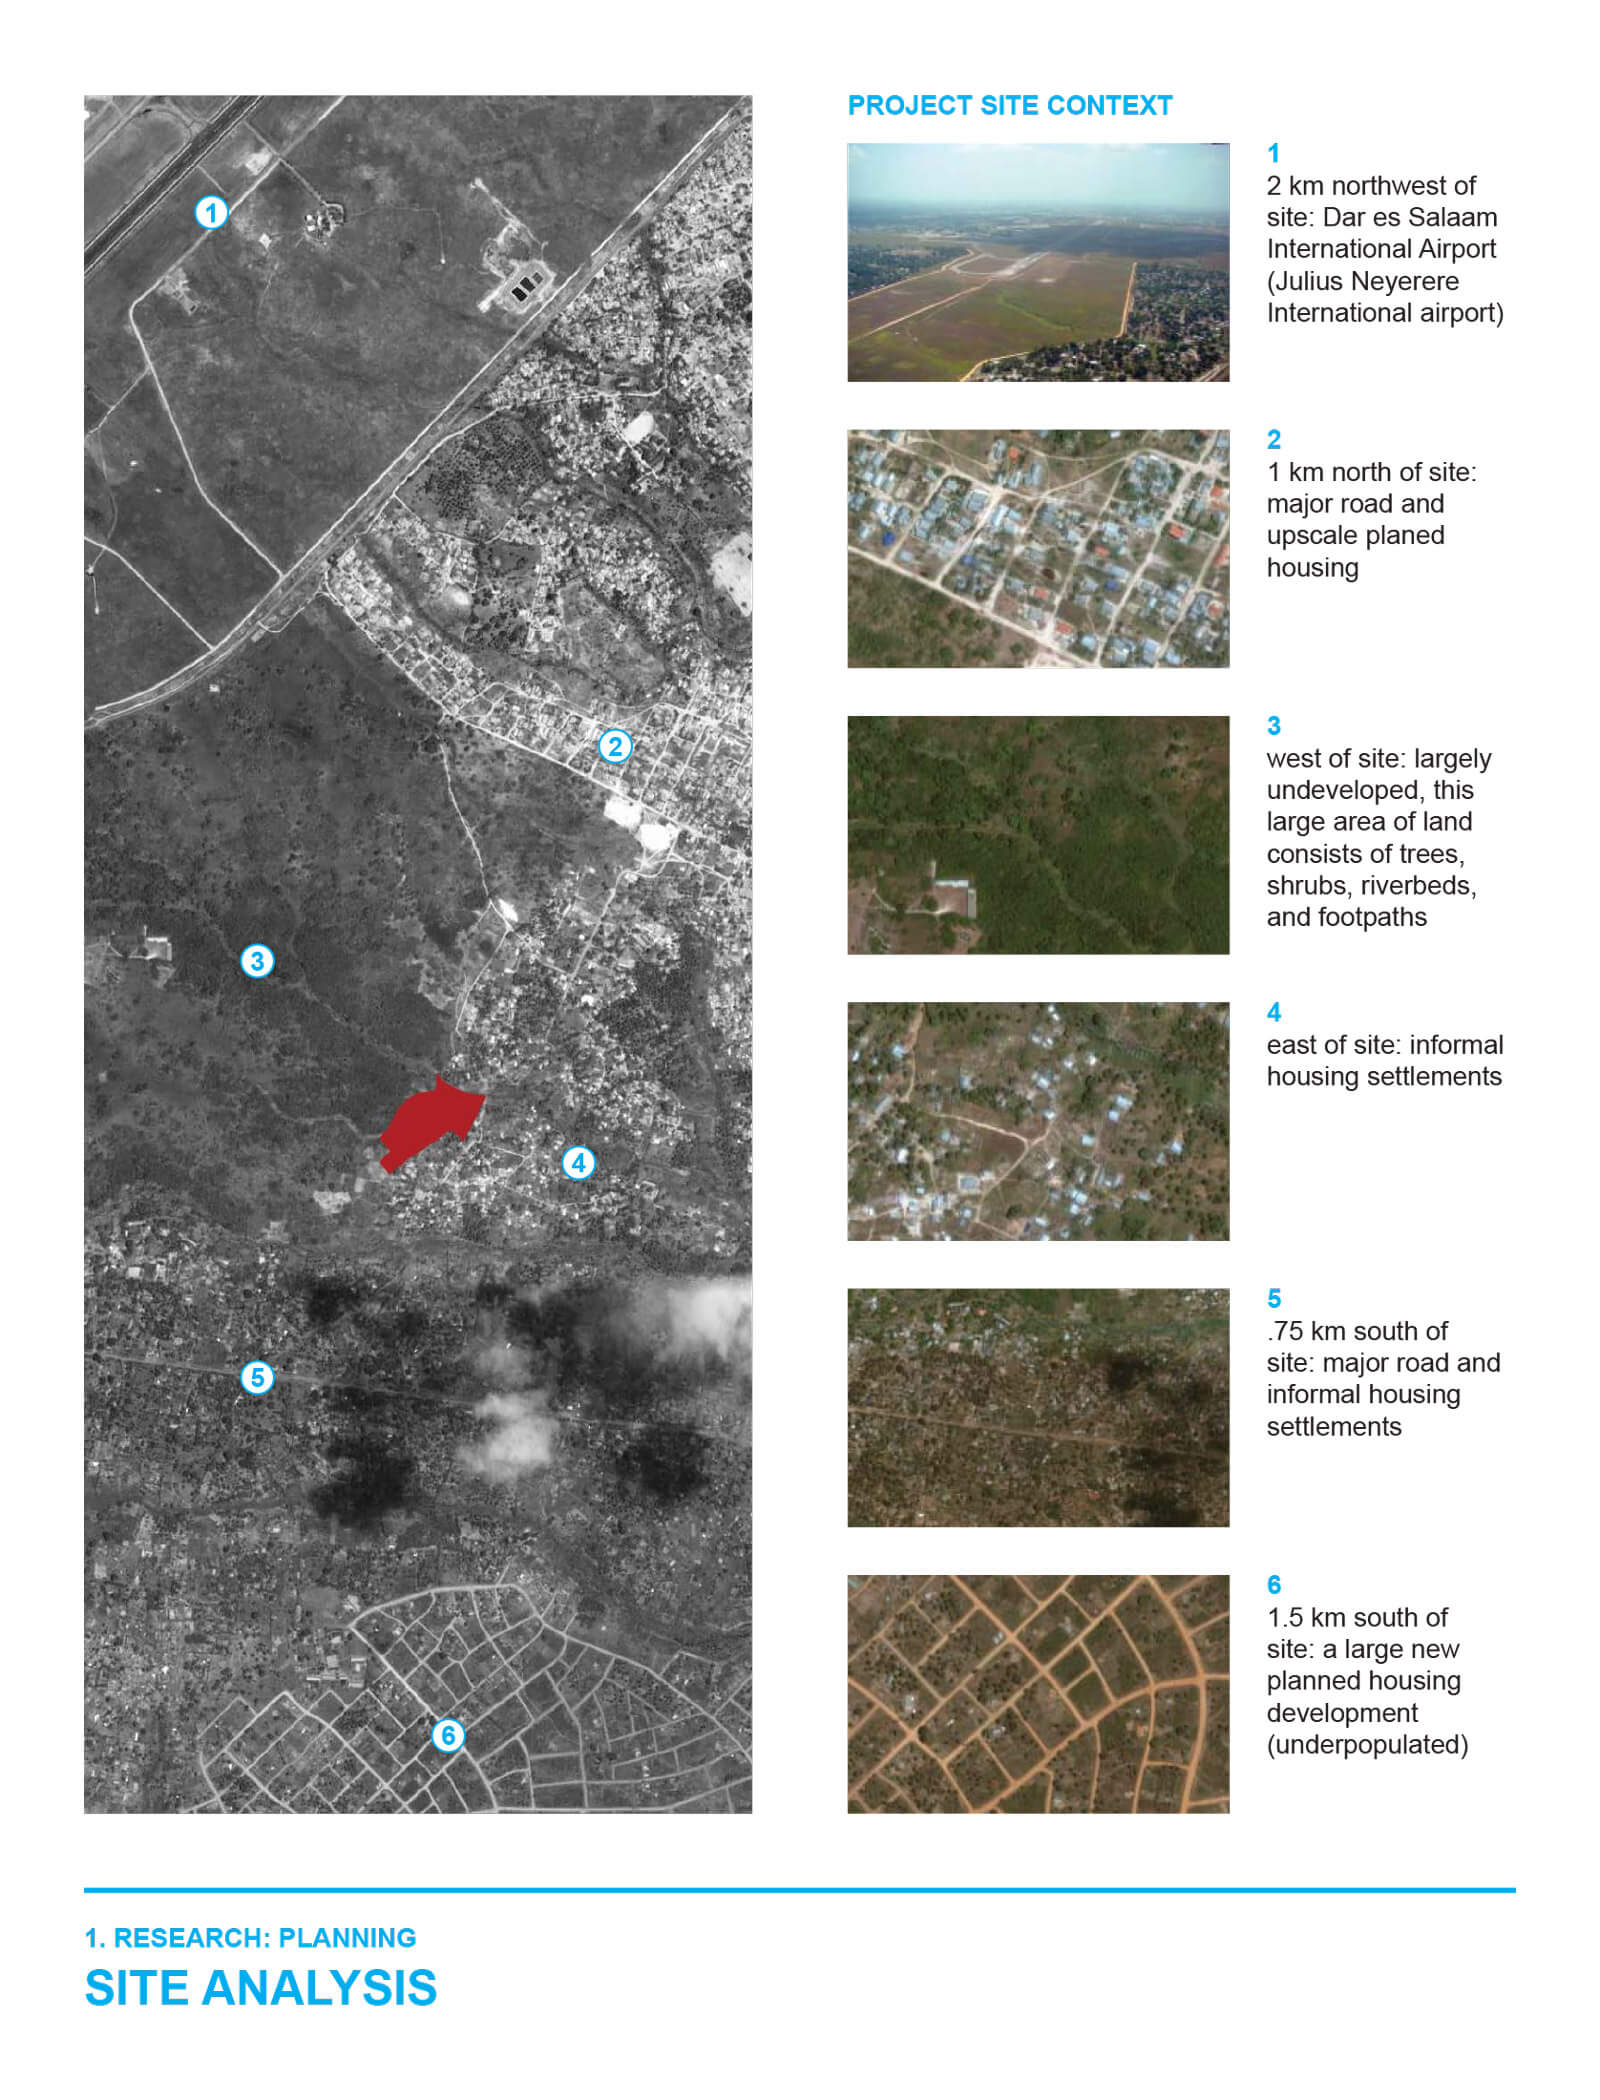 studio vara research tanzania site analysis project site context